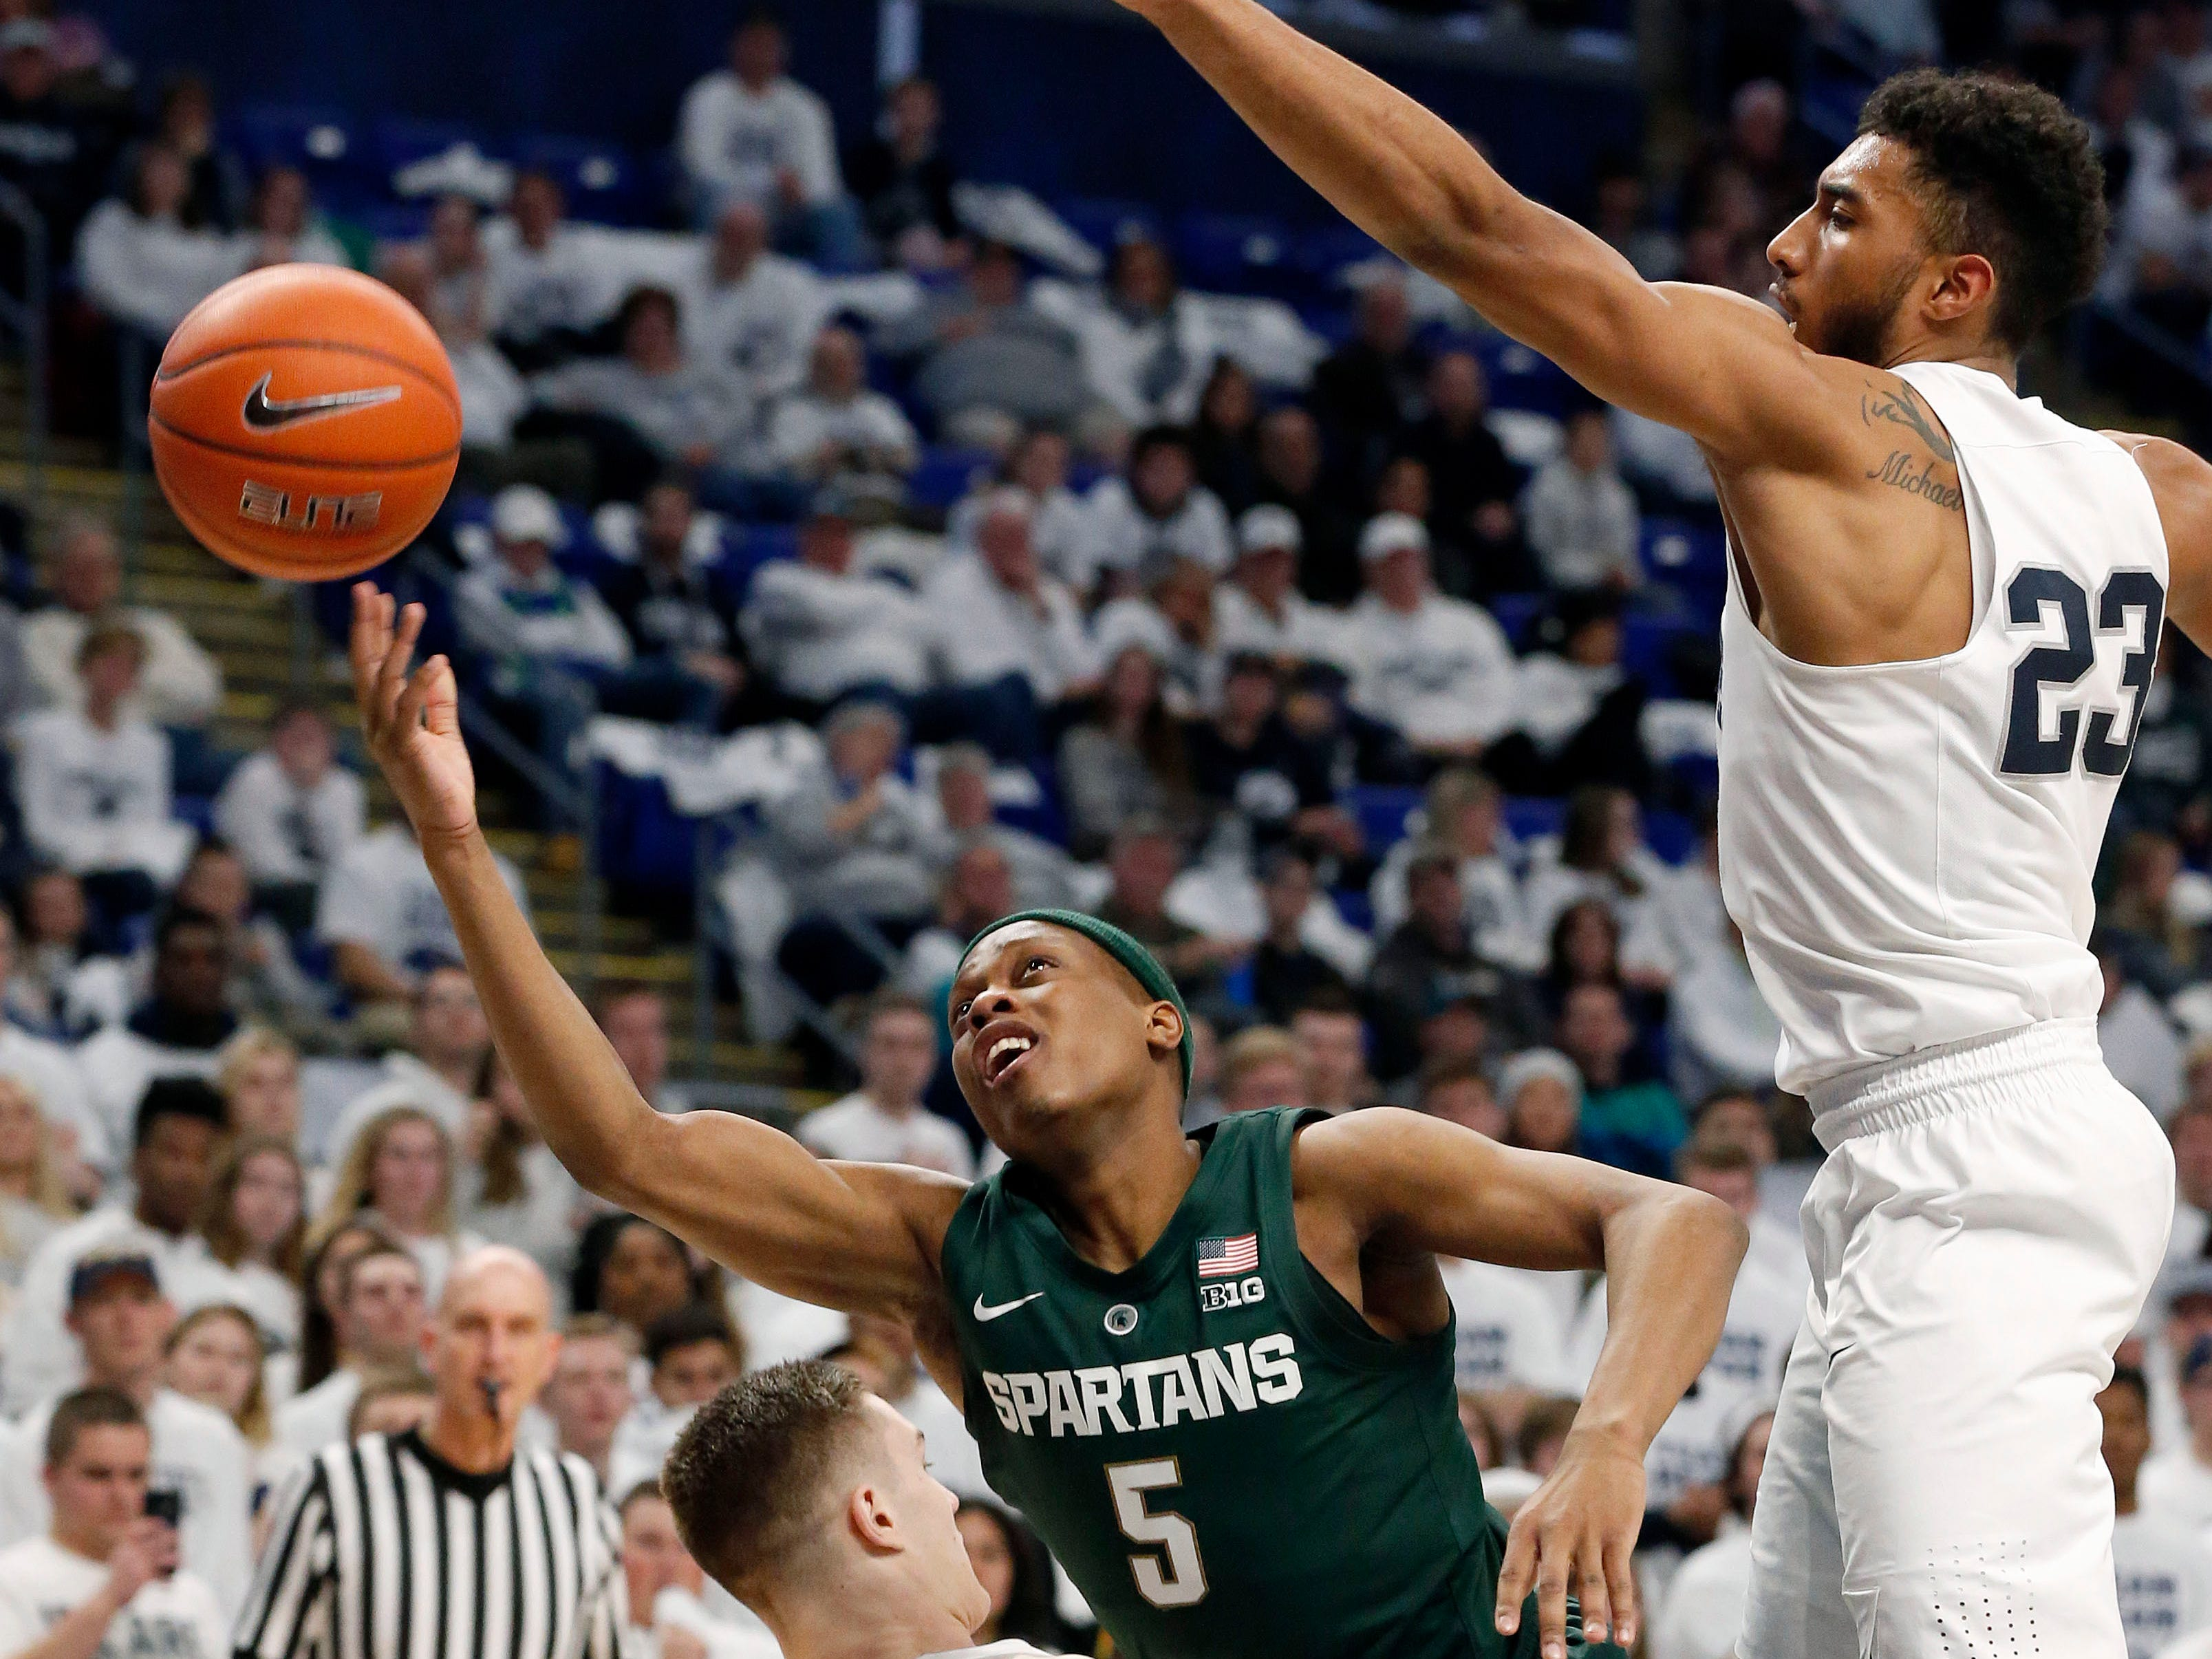 Michigan State's Cassius Winston (5) drives to the hoop as he is fouled by Penn State's Kyle McCloskey (10) during first-half action.